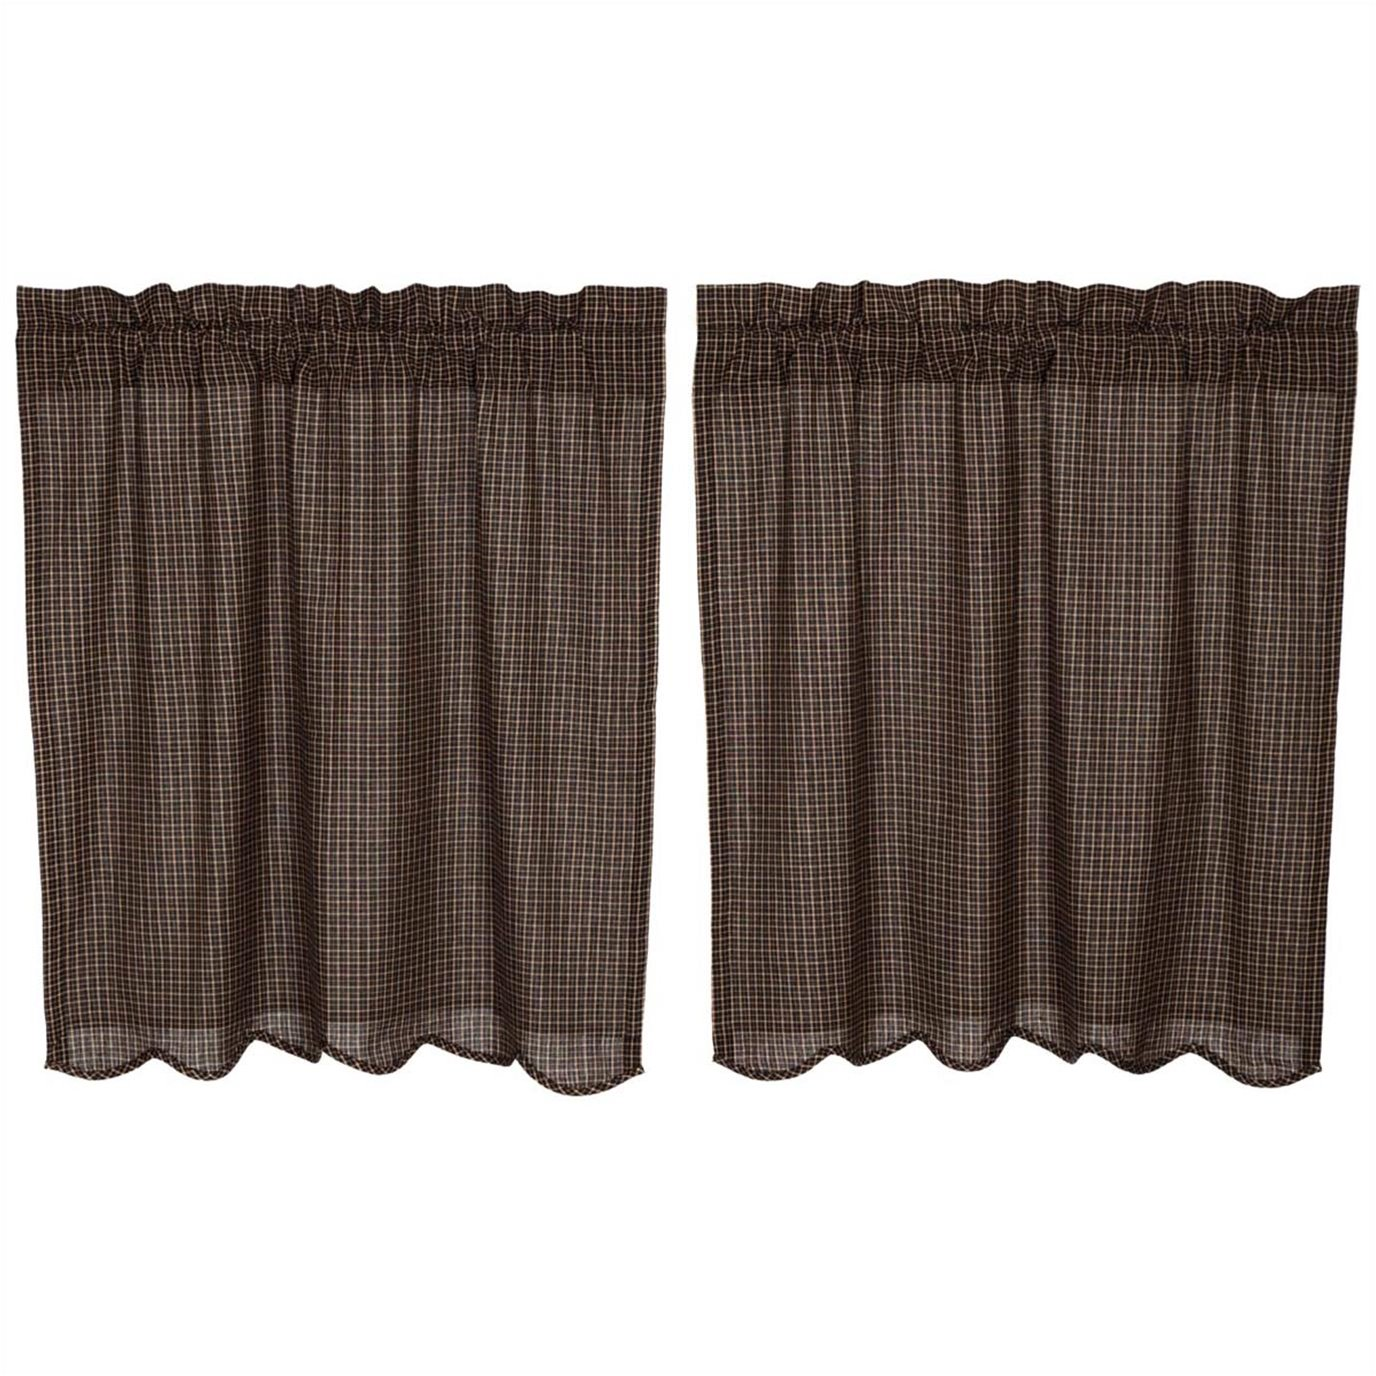 Kettle Grove Plaid Tier Scalloped Set of 2 L36xW36